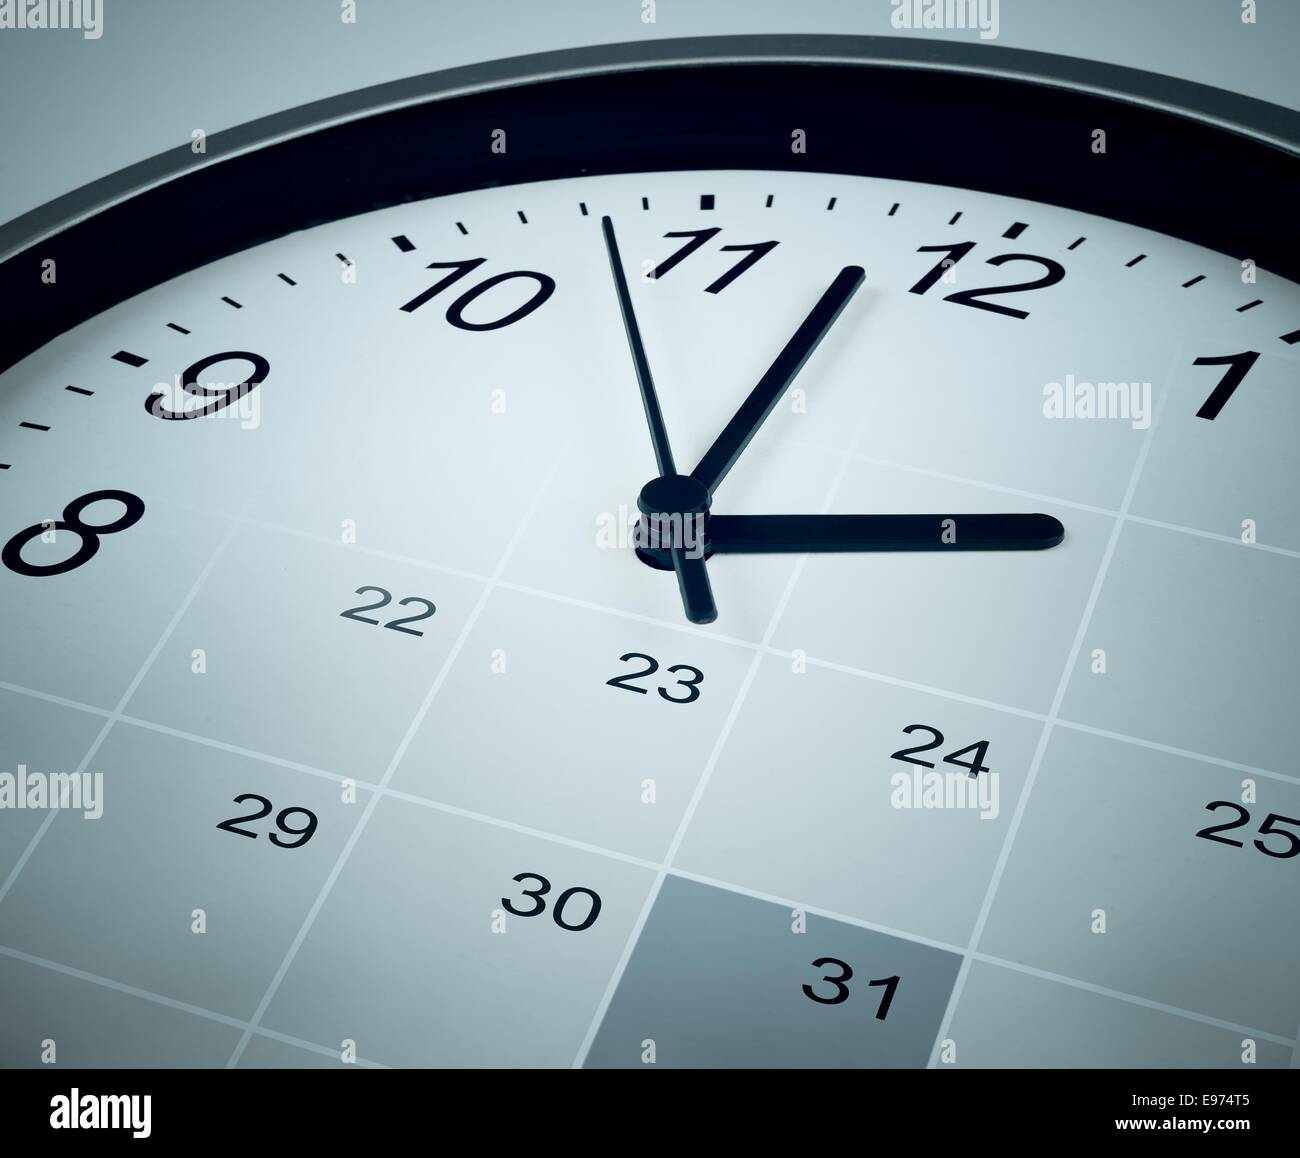 Calendar and clock face. Time manager and agenda concept. - Stock Image